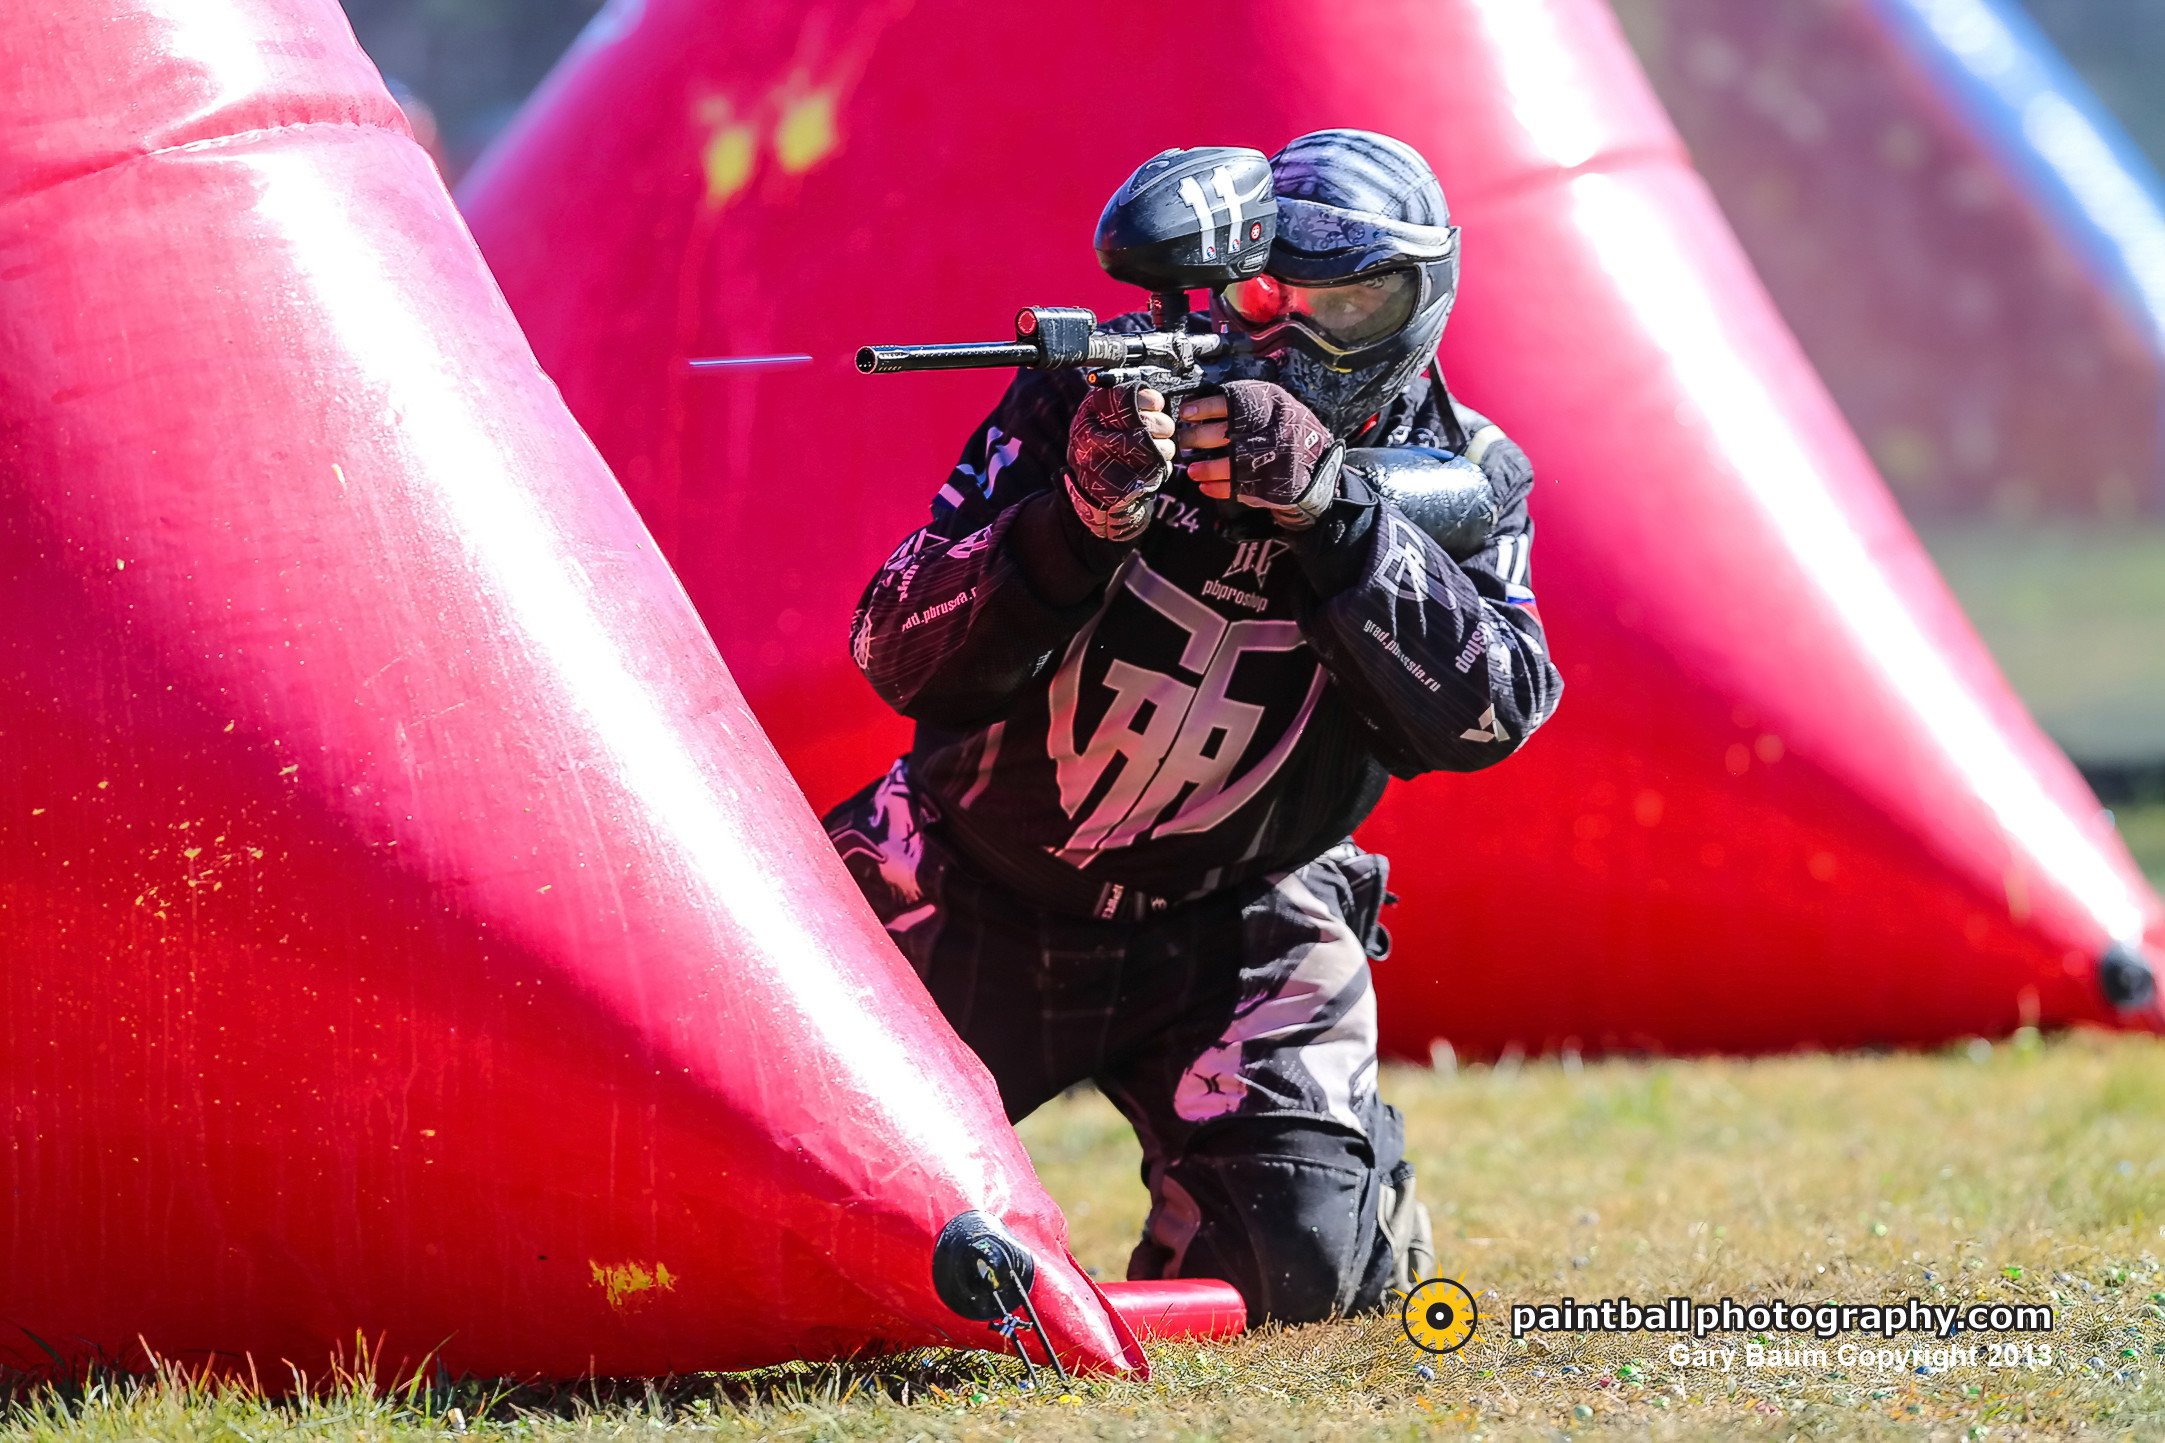 Paintball Wallpaper Hd 69 Images